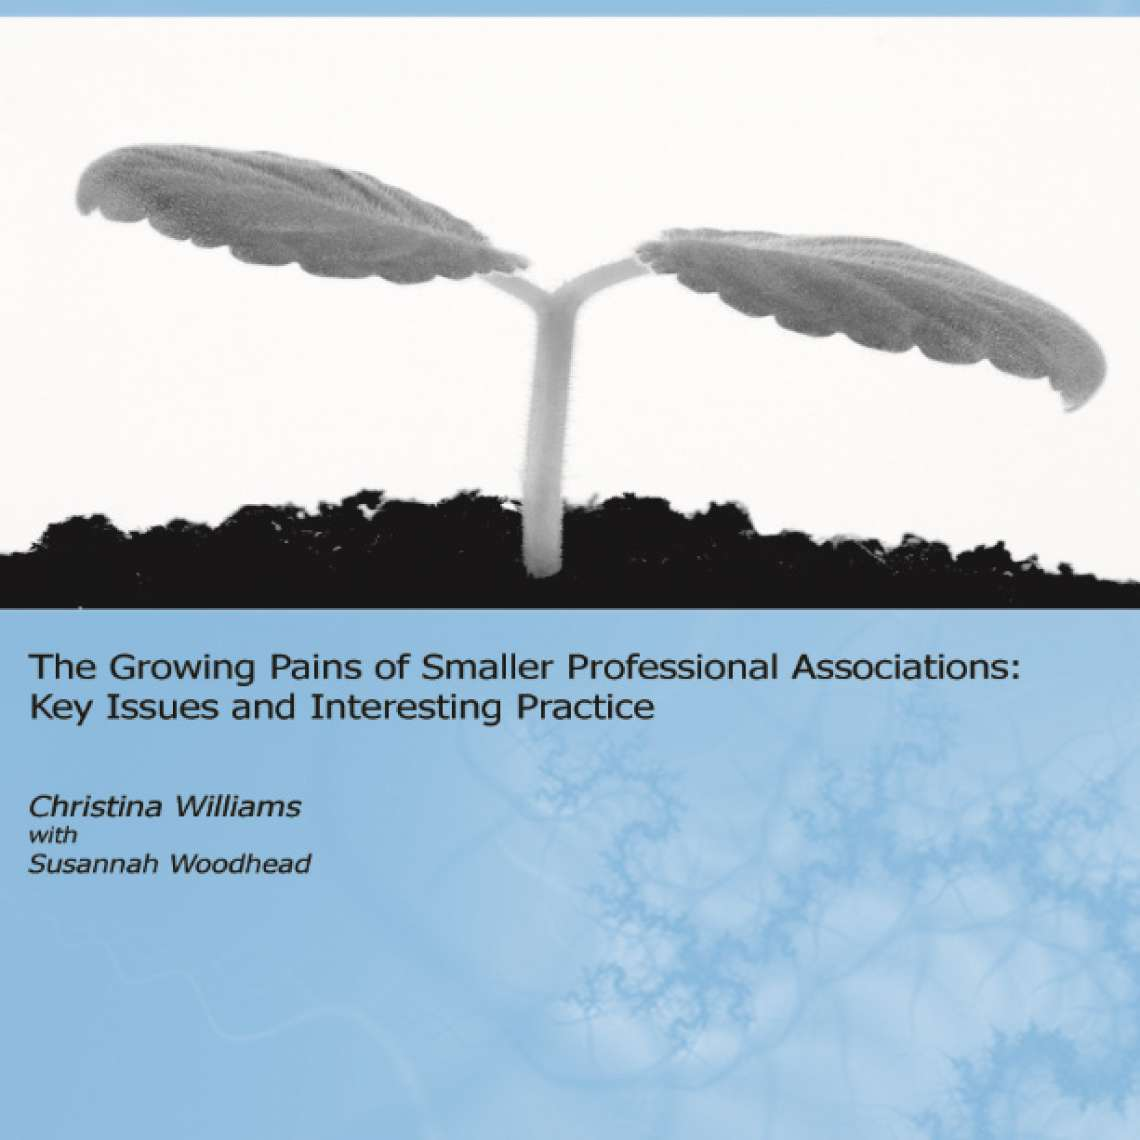 The Growing Pains of Smaller Professional Associations (2007)